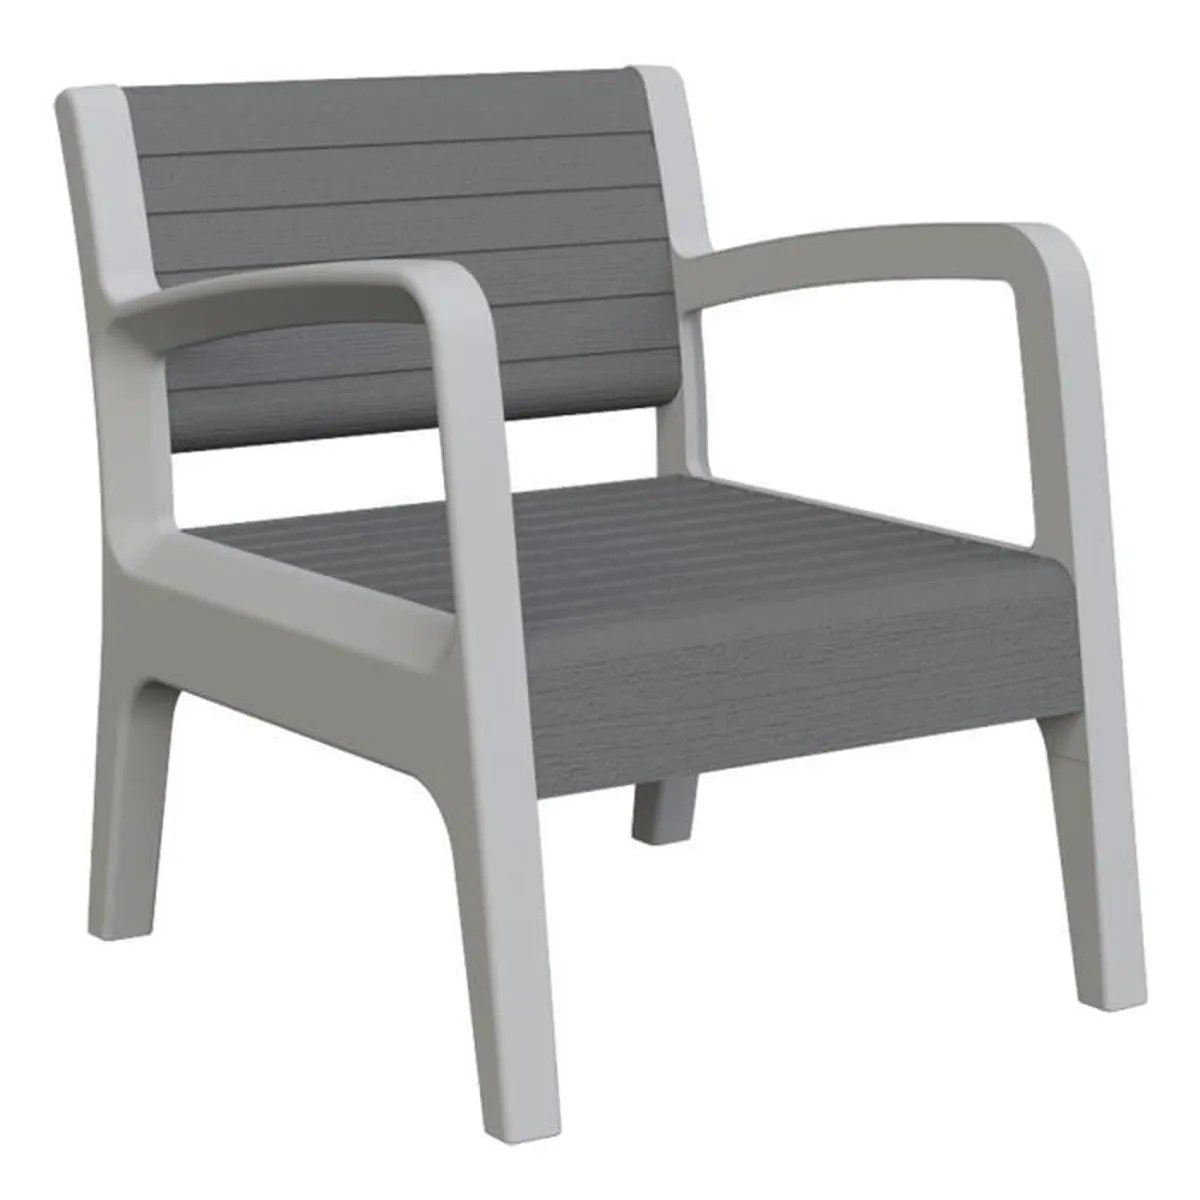 Ensemble Salon Complet Ensemble Miami Canapé 43 2 Fauteuils 43 1 Table Basse Gris